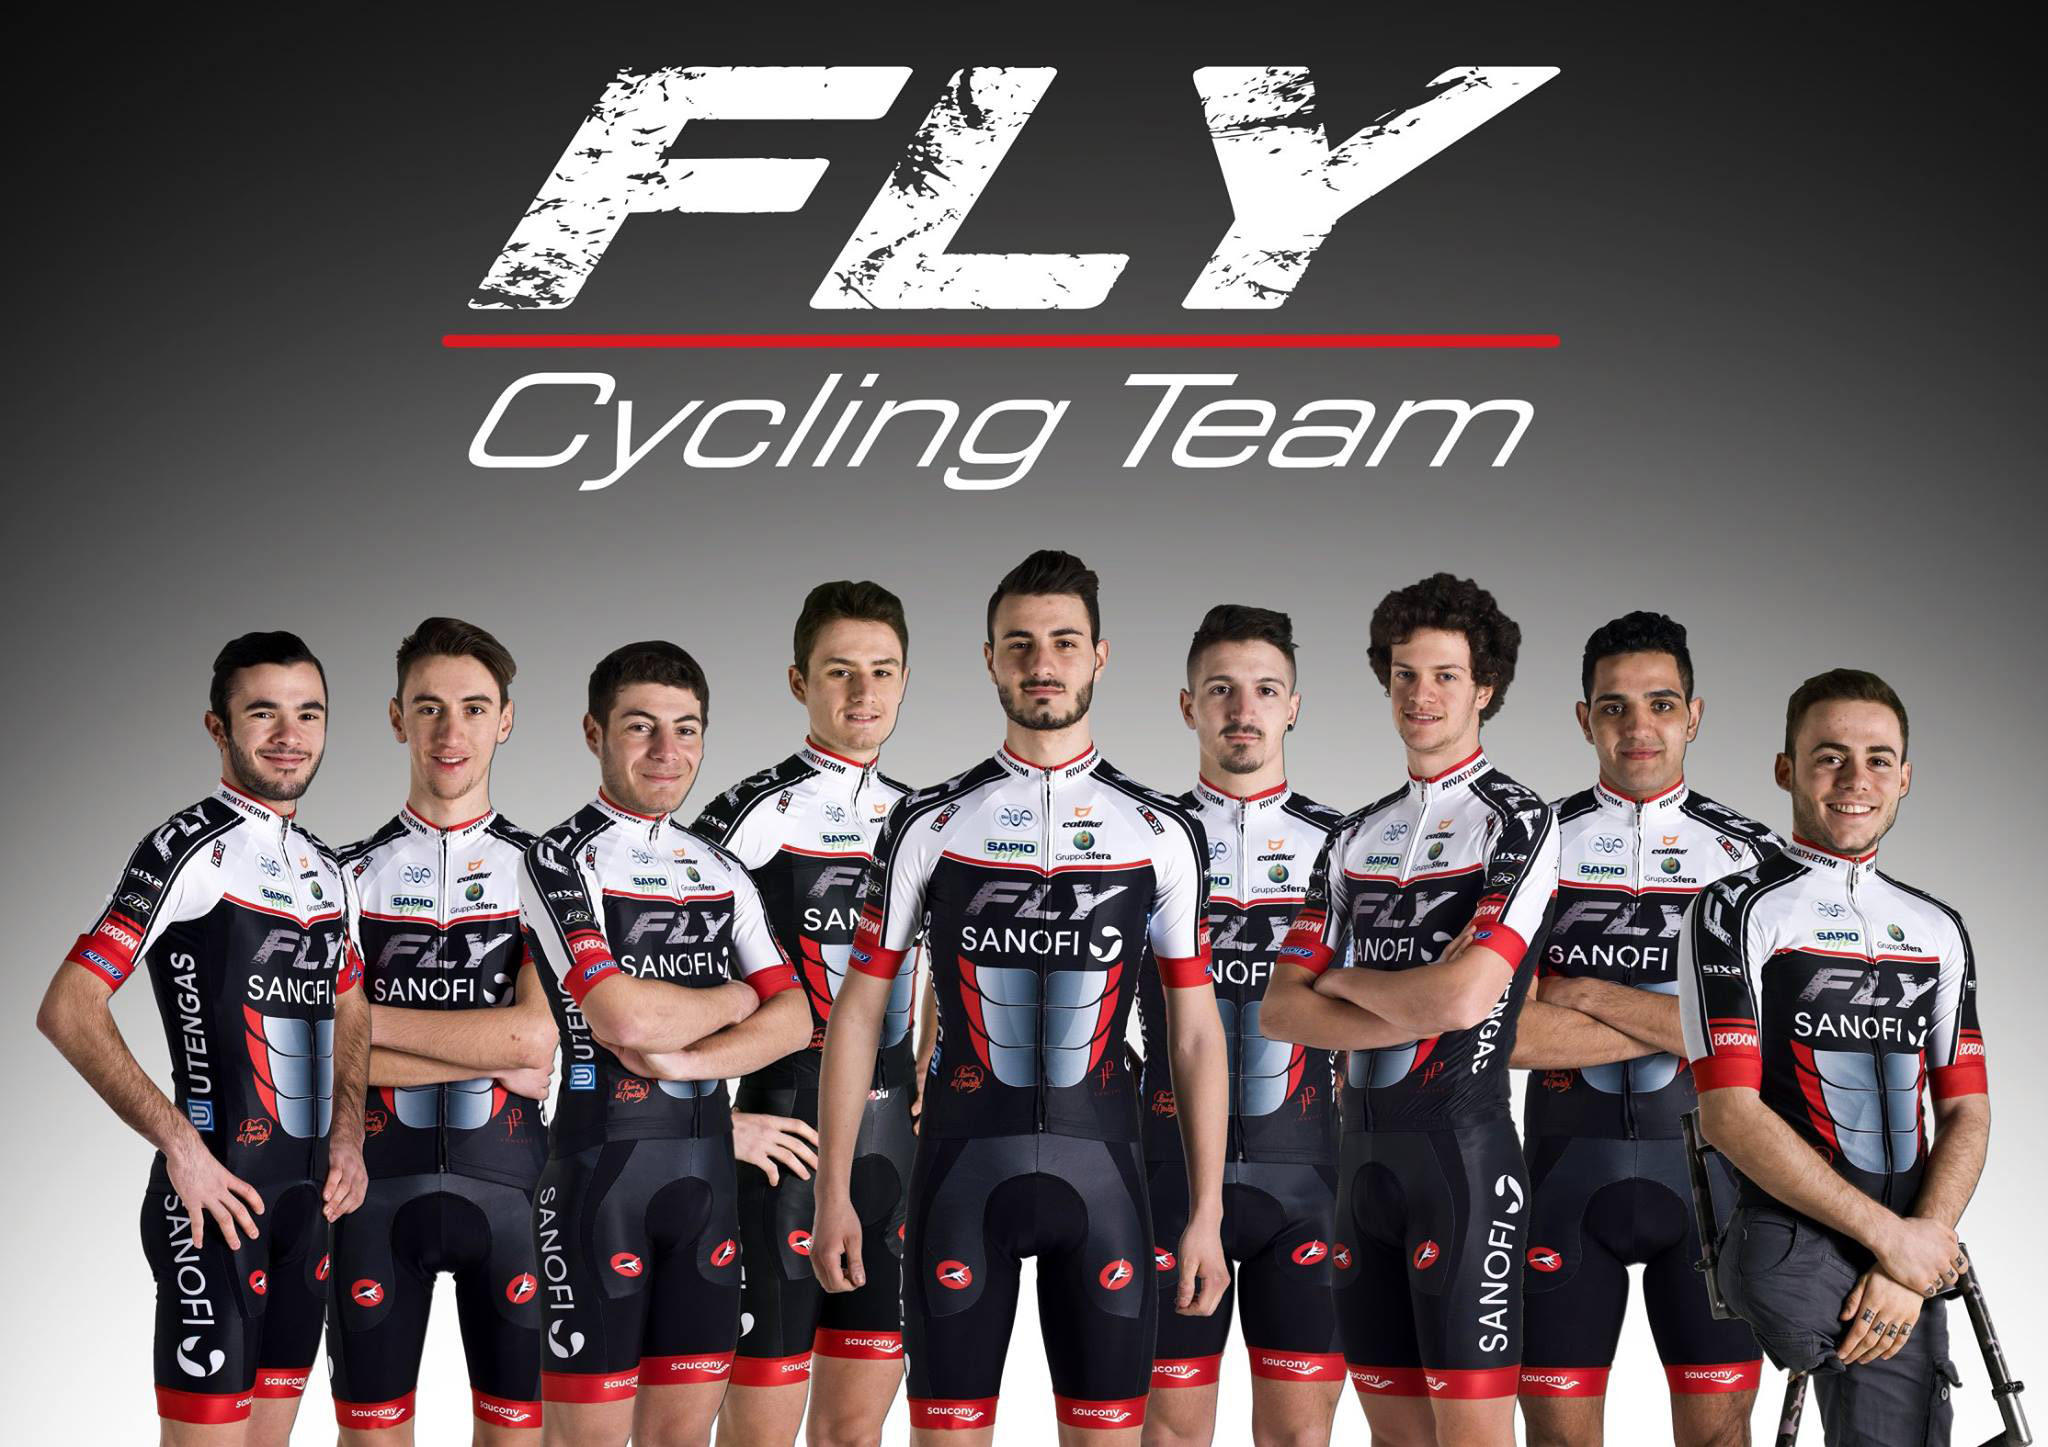 Fly Cycling Team